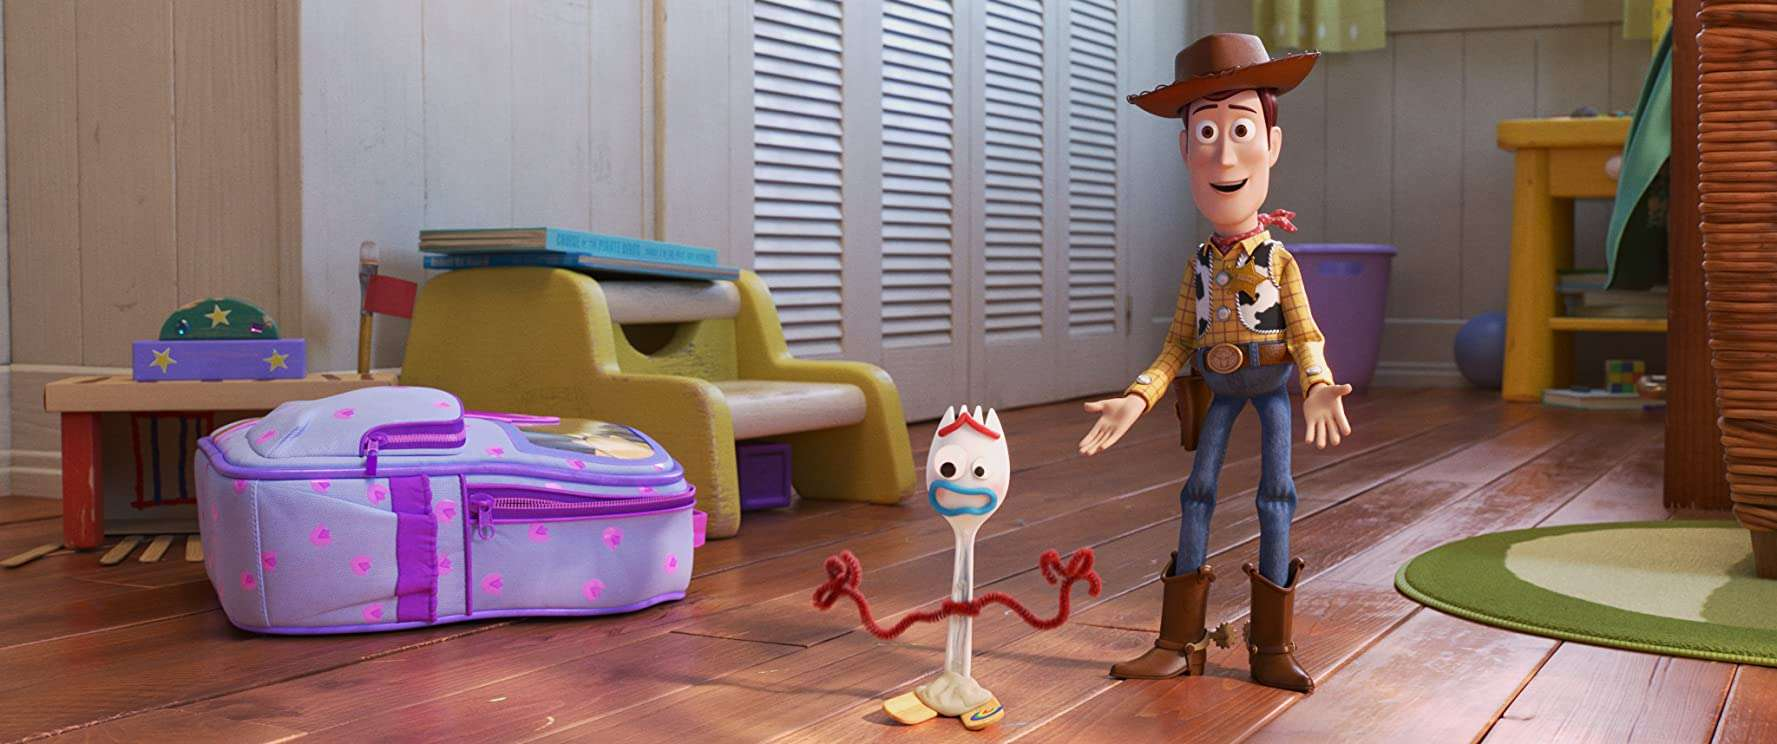 Toy-Story-4-2019